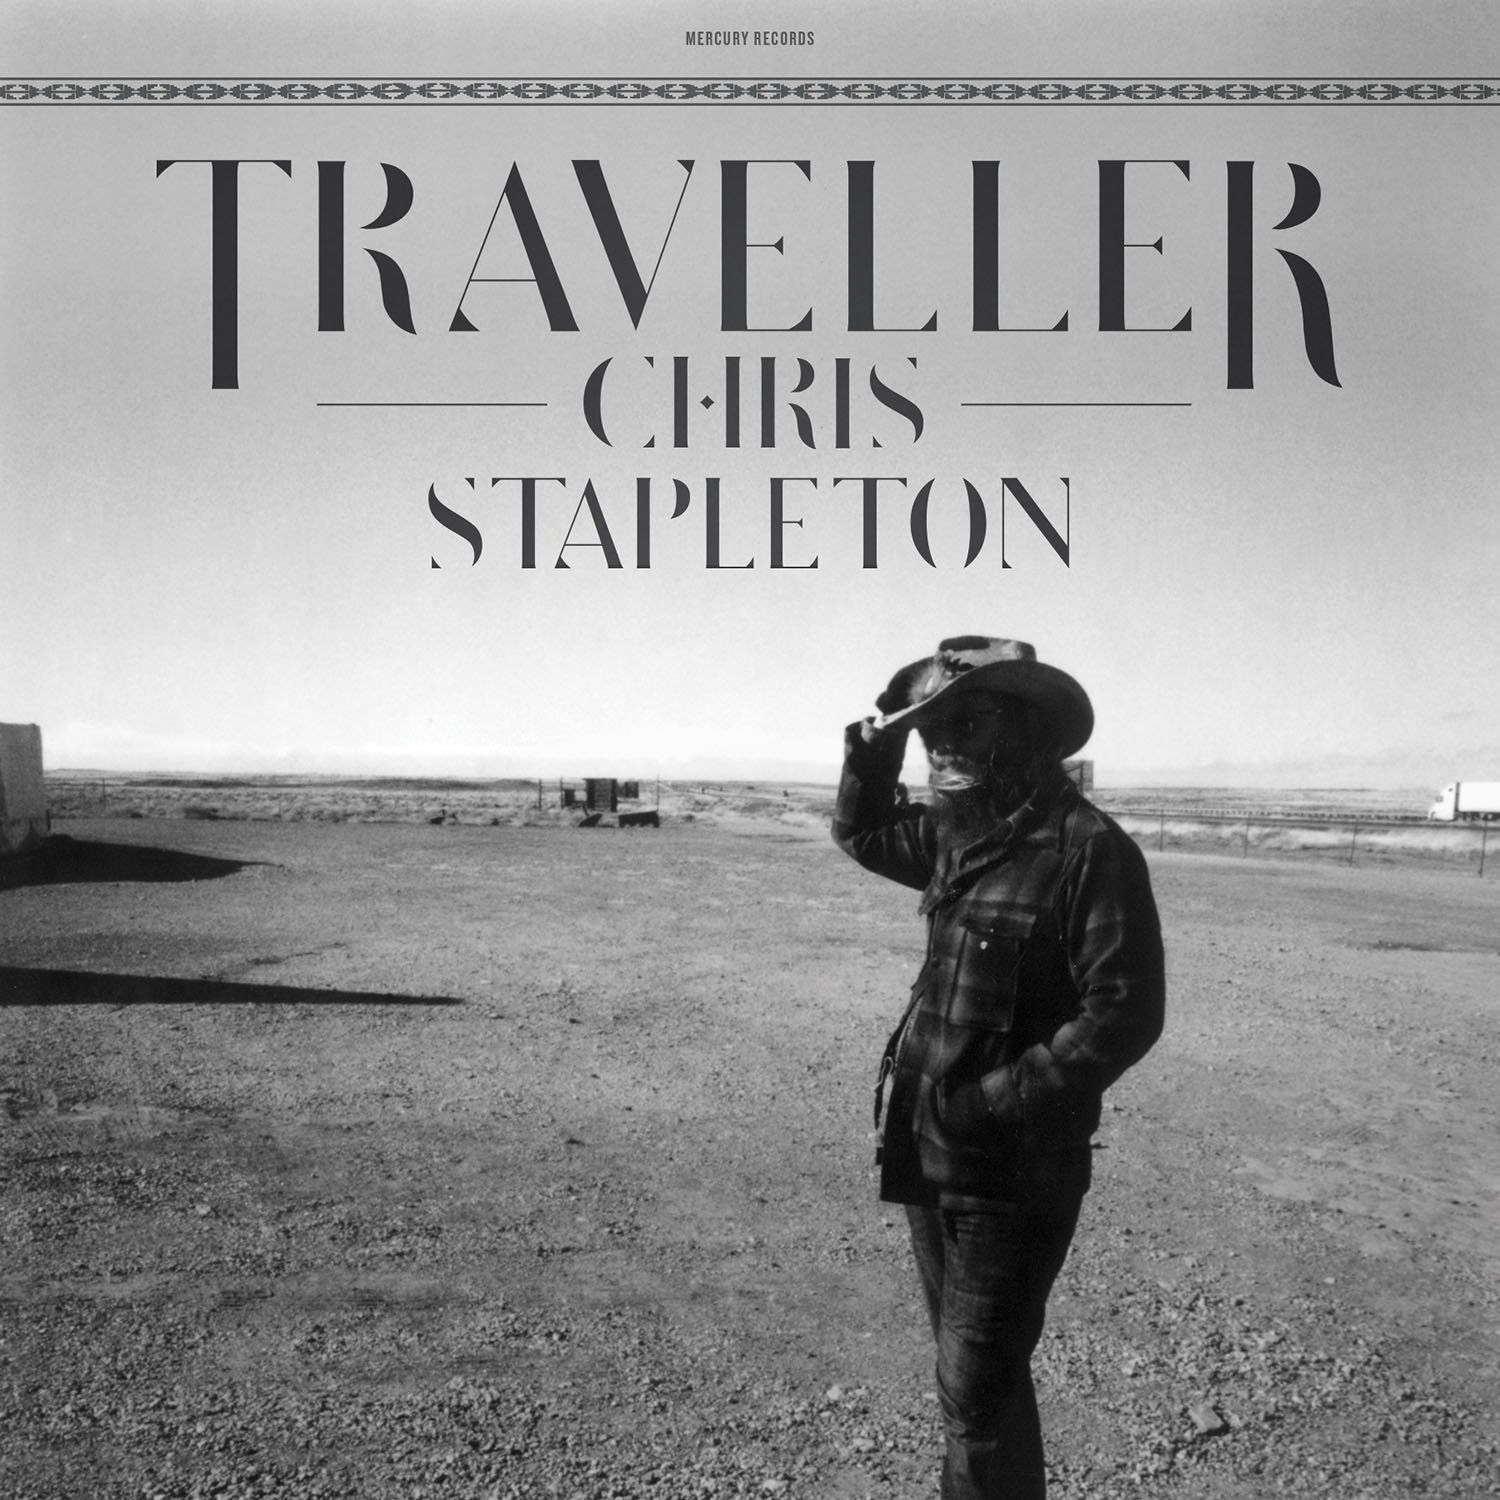 Chris Stapleton - Traveller album cover